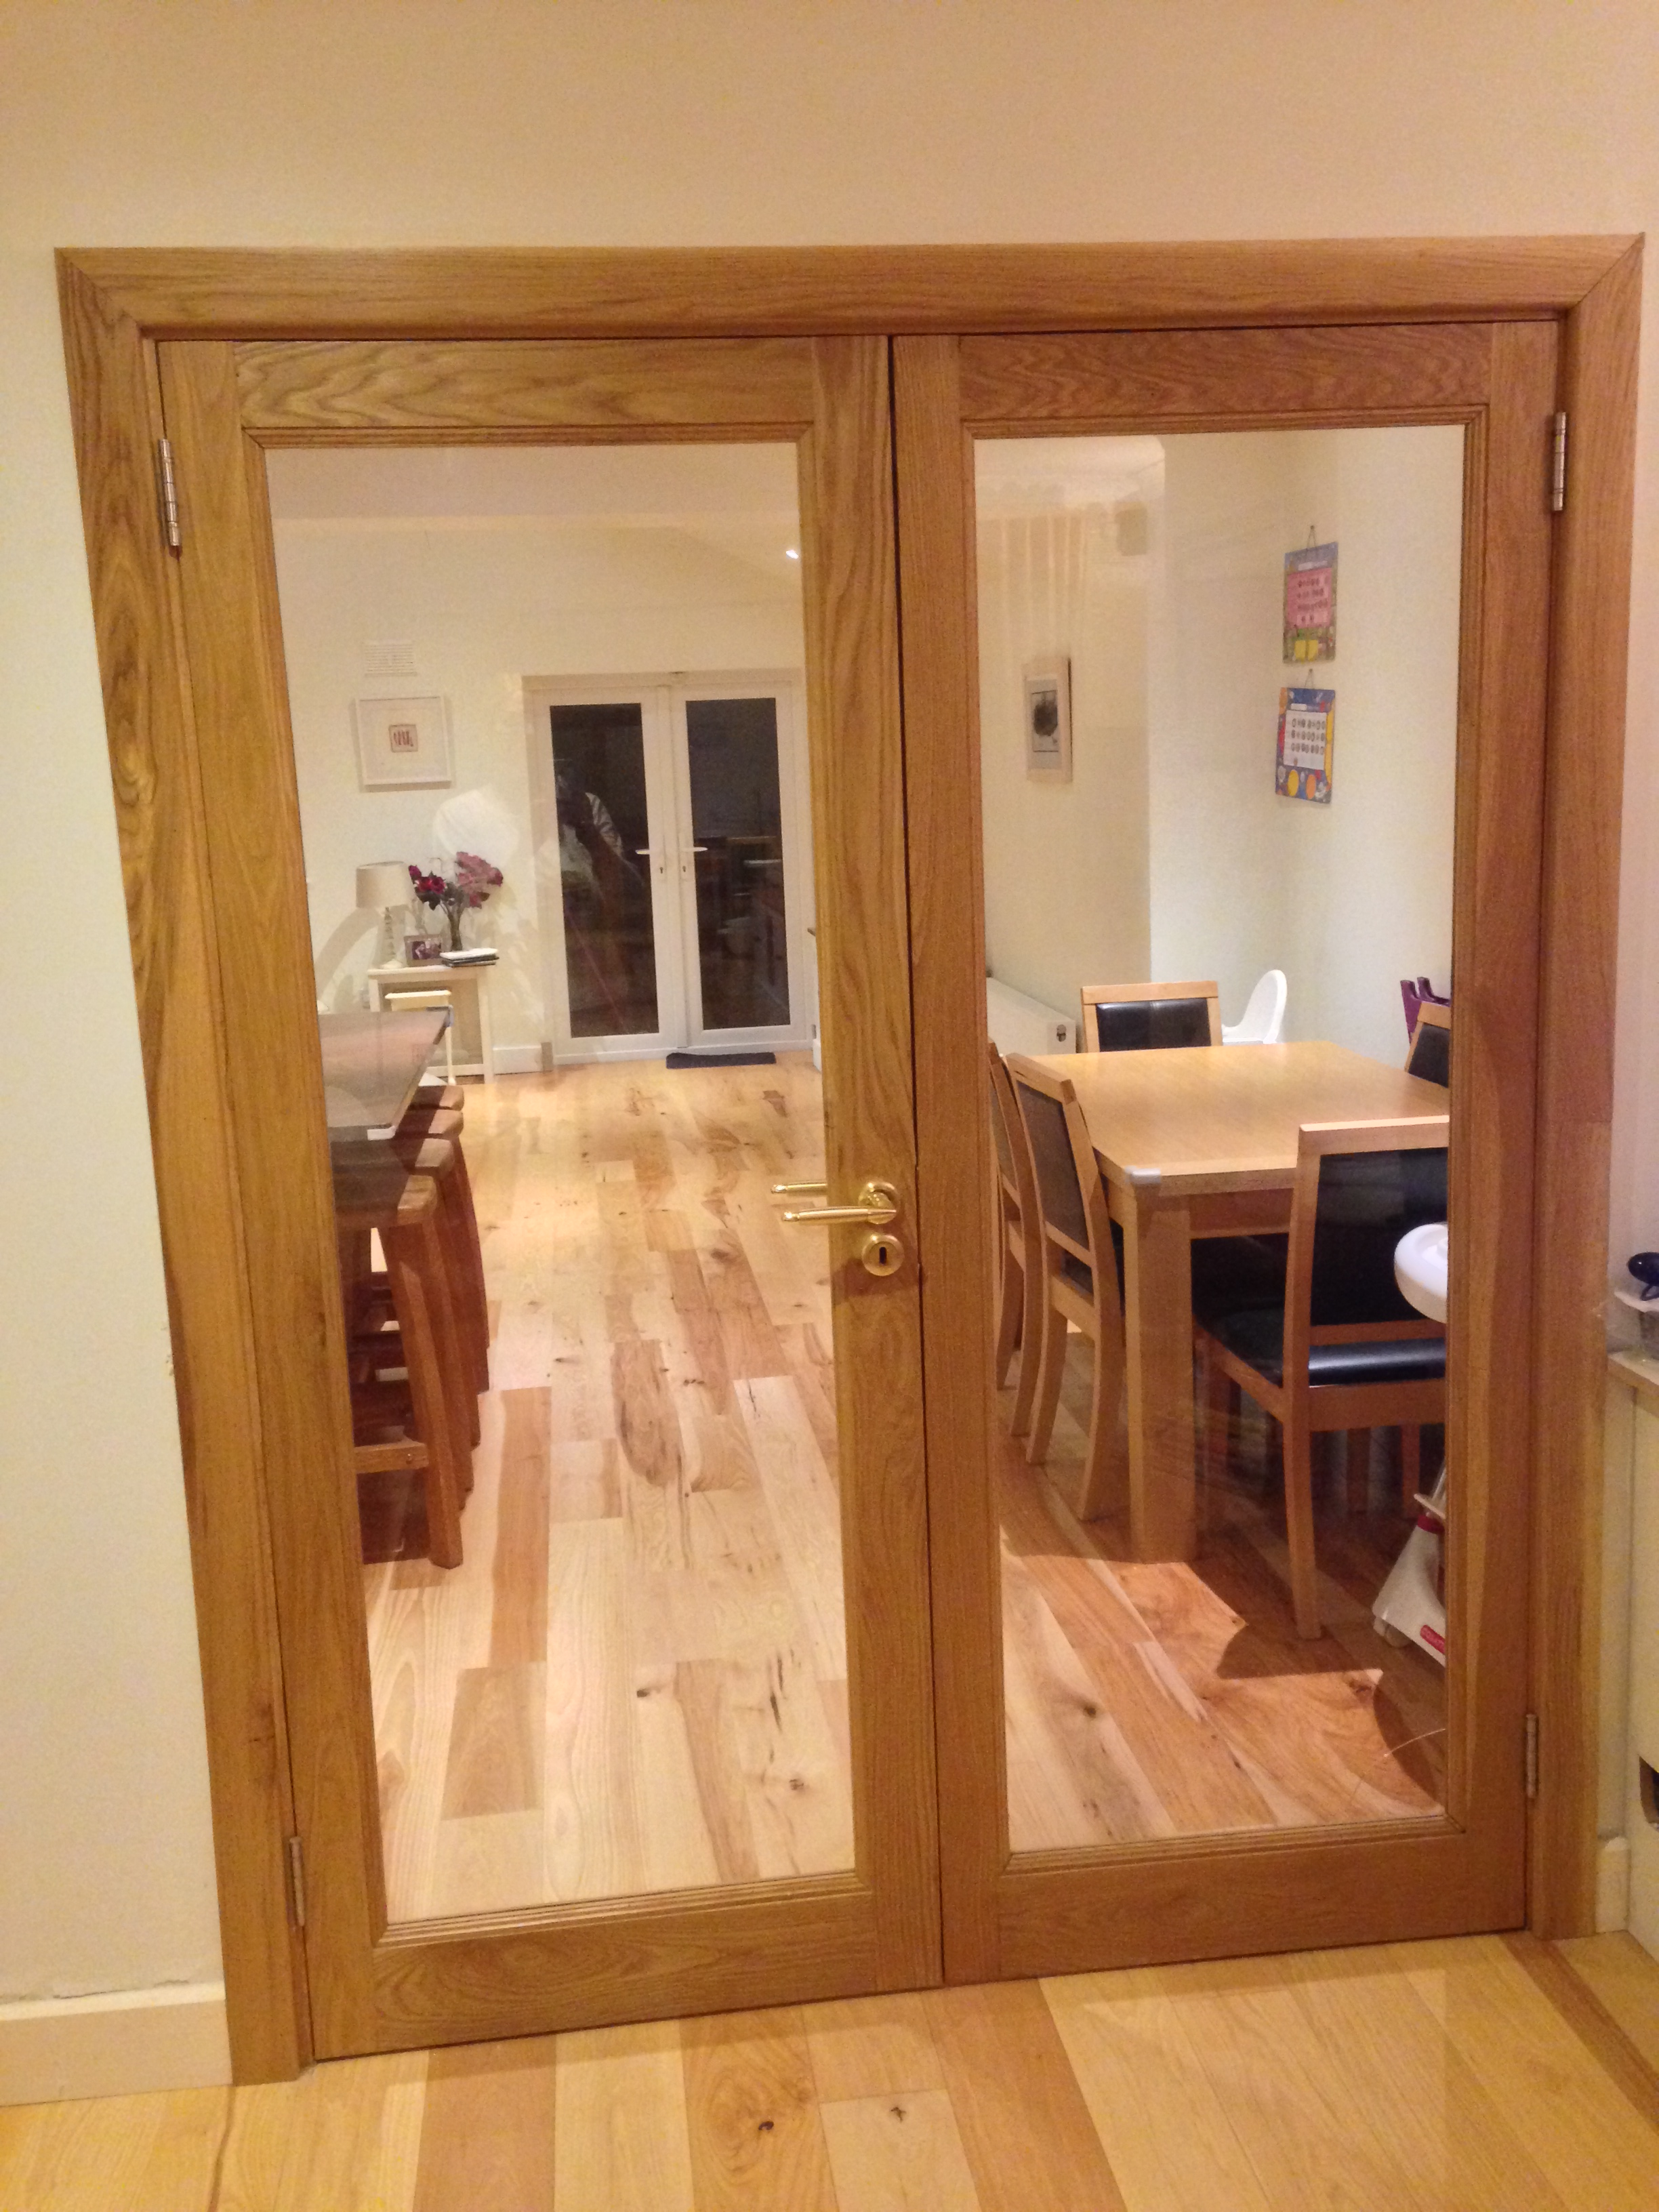 Final Door IMG_3048 & Completed Projects \u2013 D\u0027Arcy Carpentry \u0026 Joinery